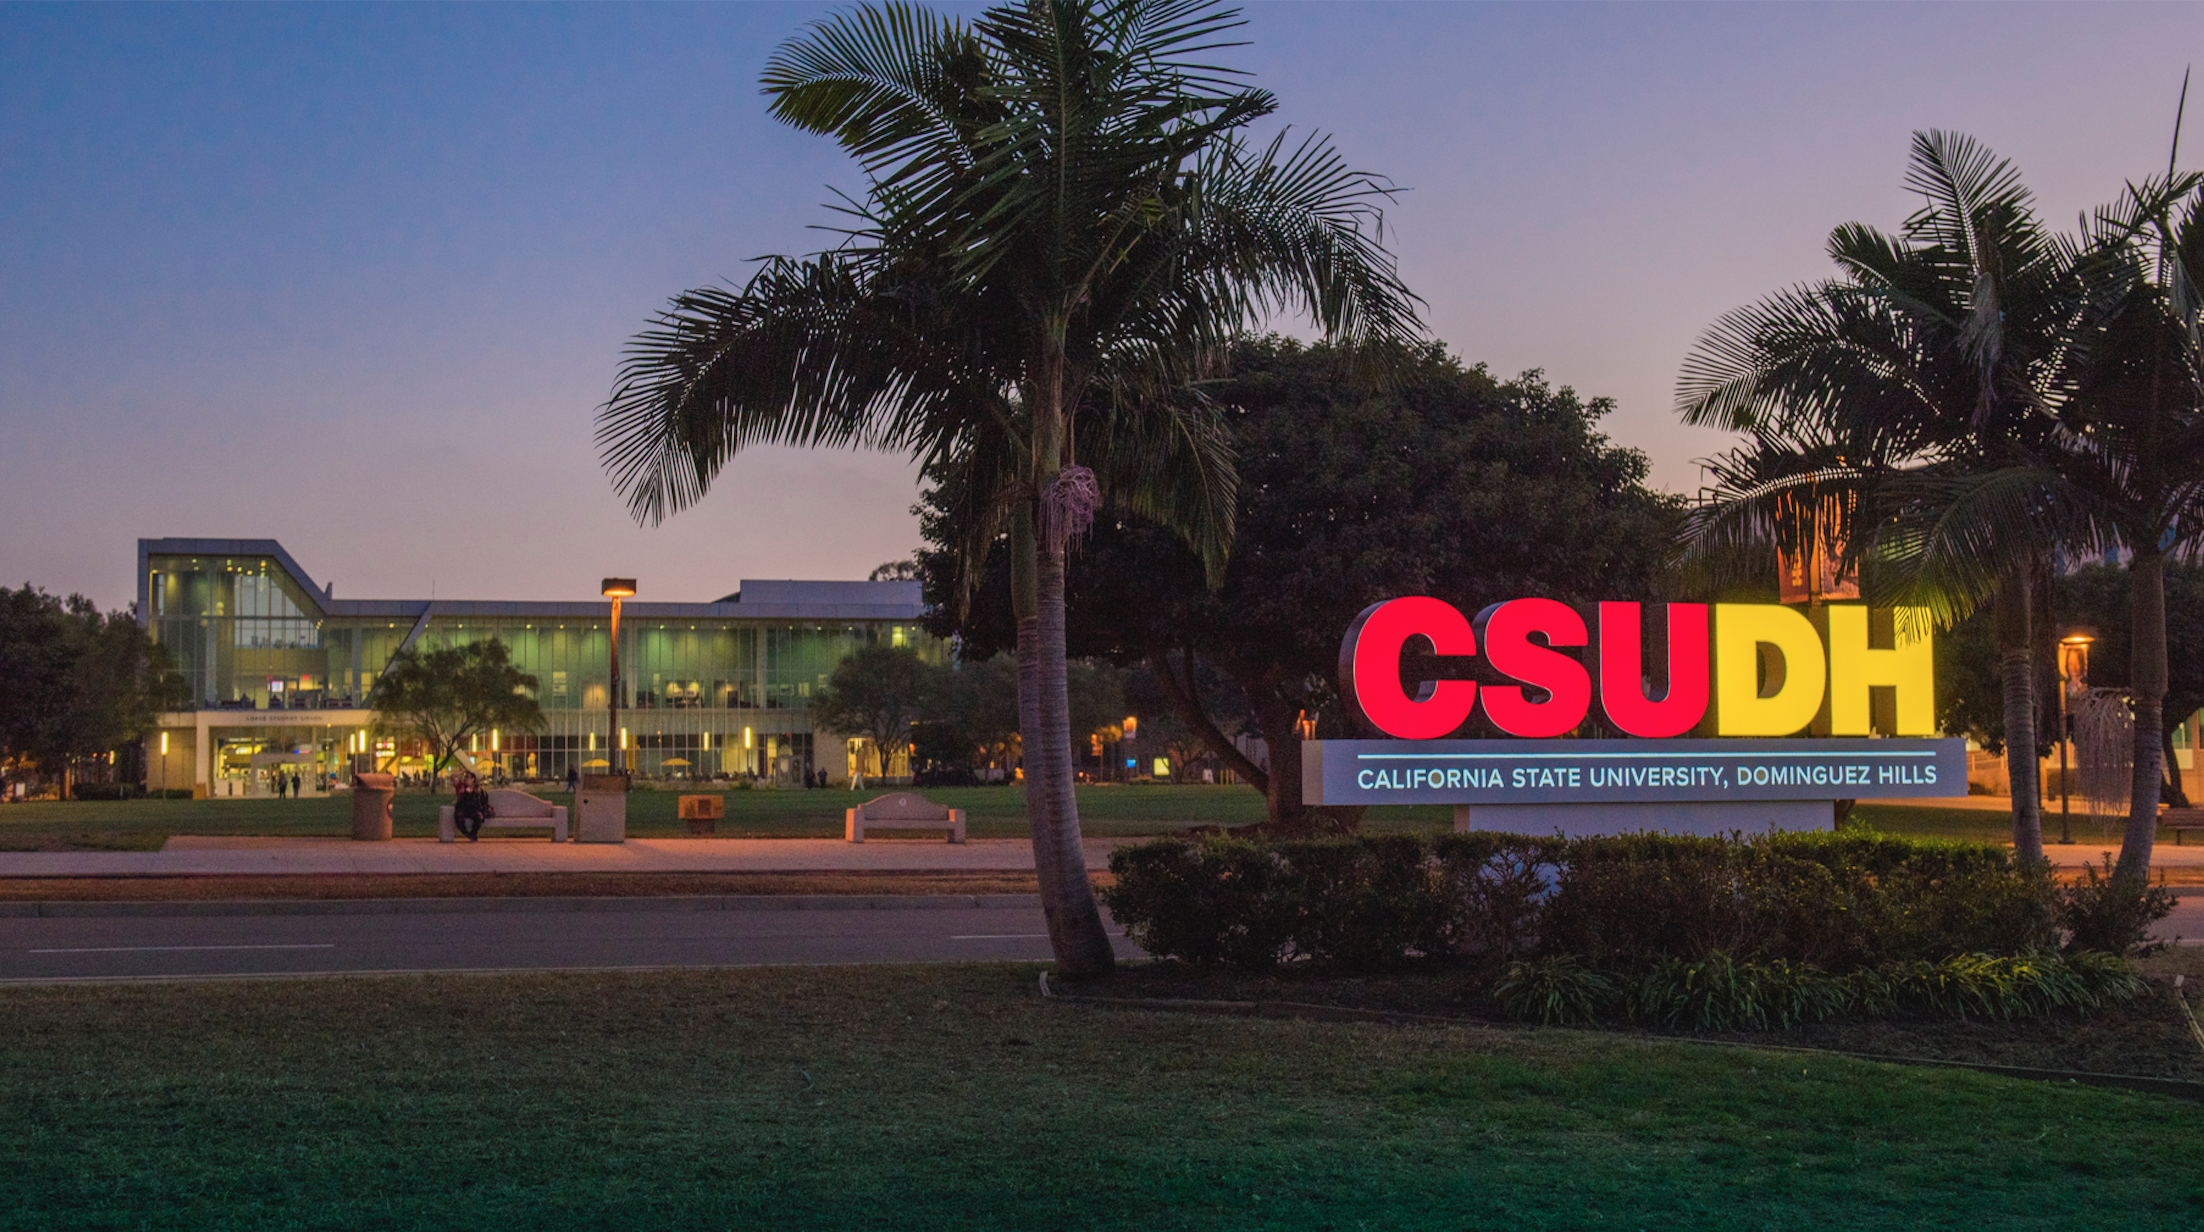 CSUDH Sign on Campus